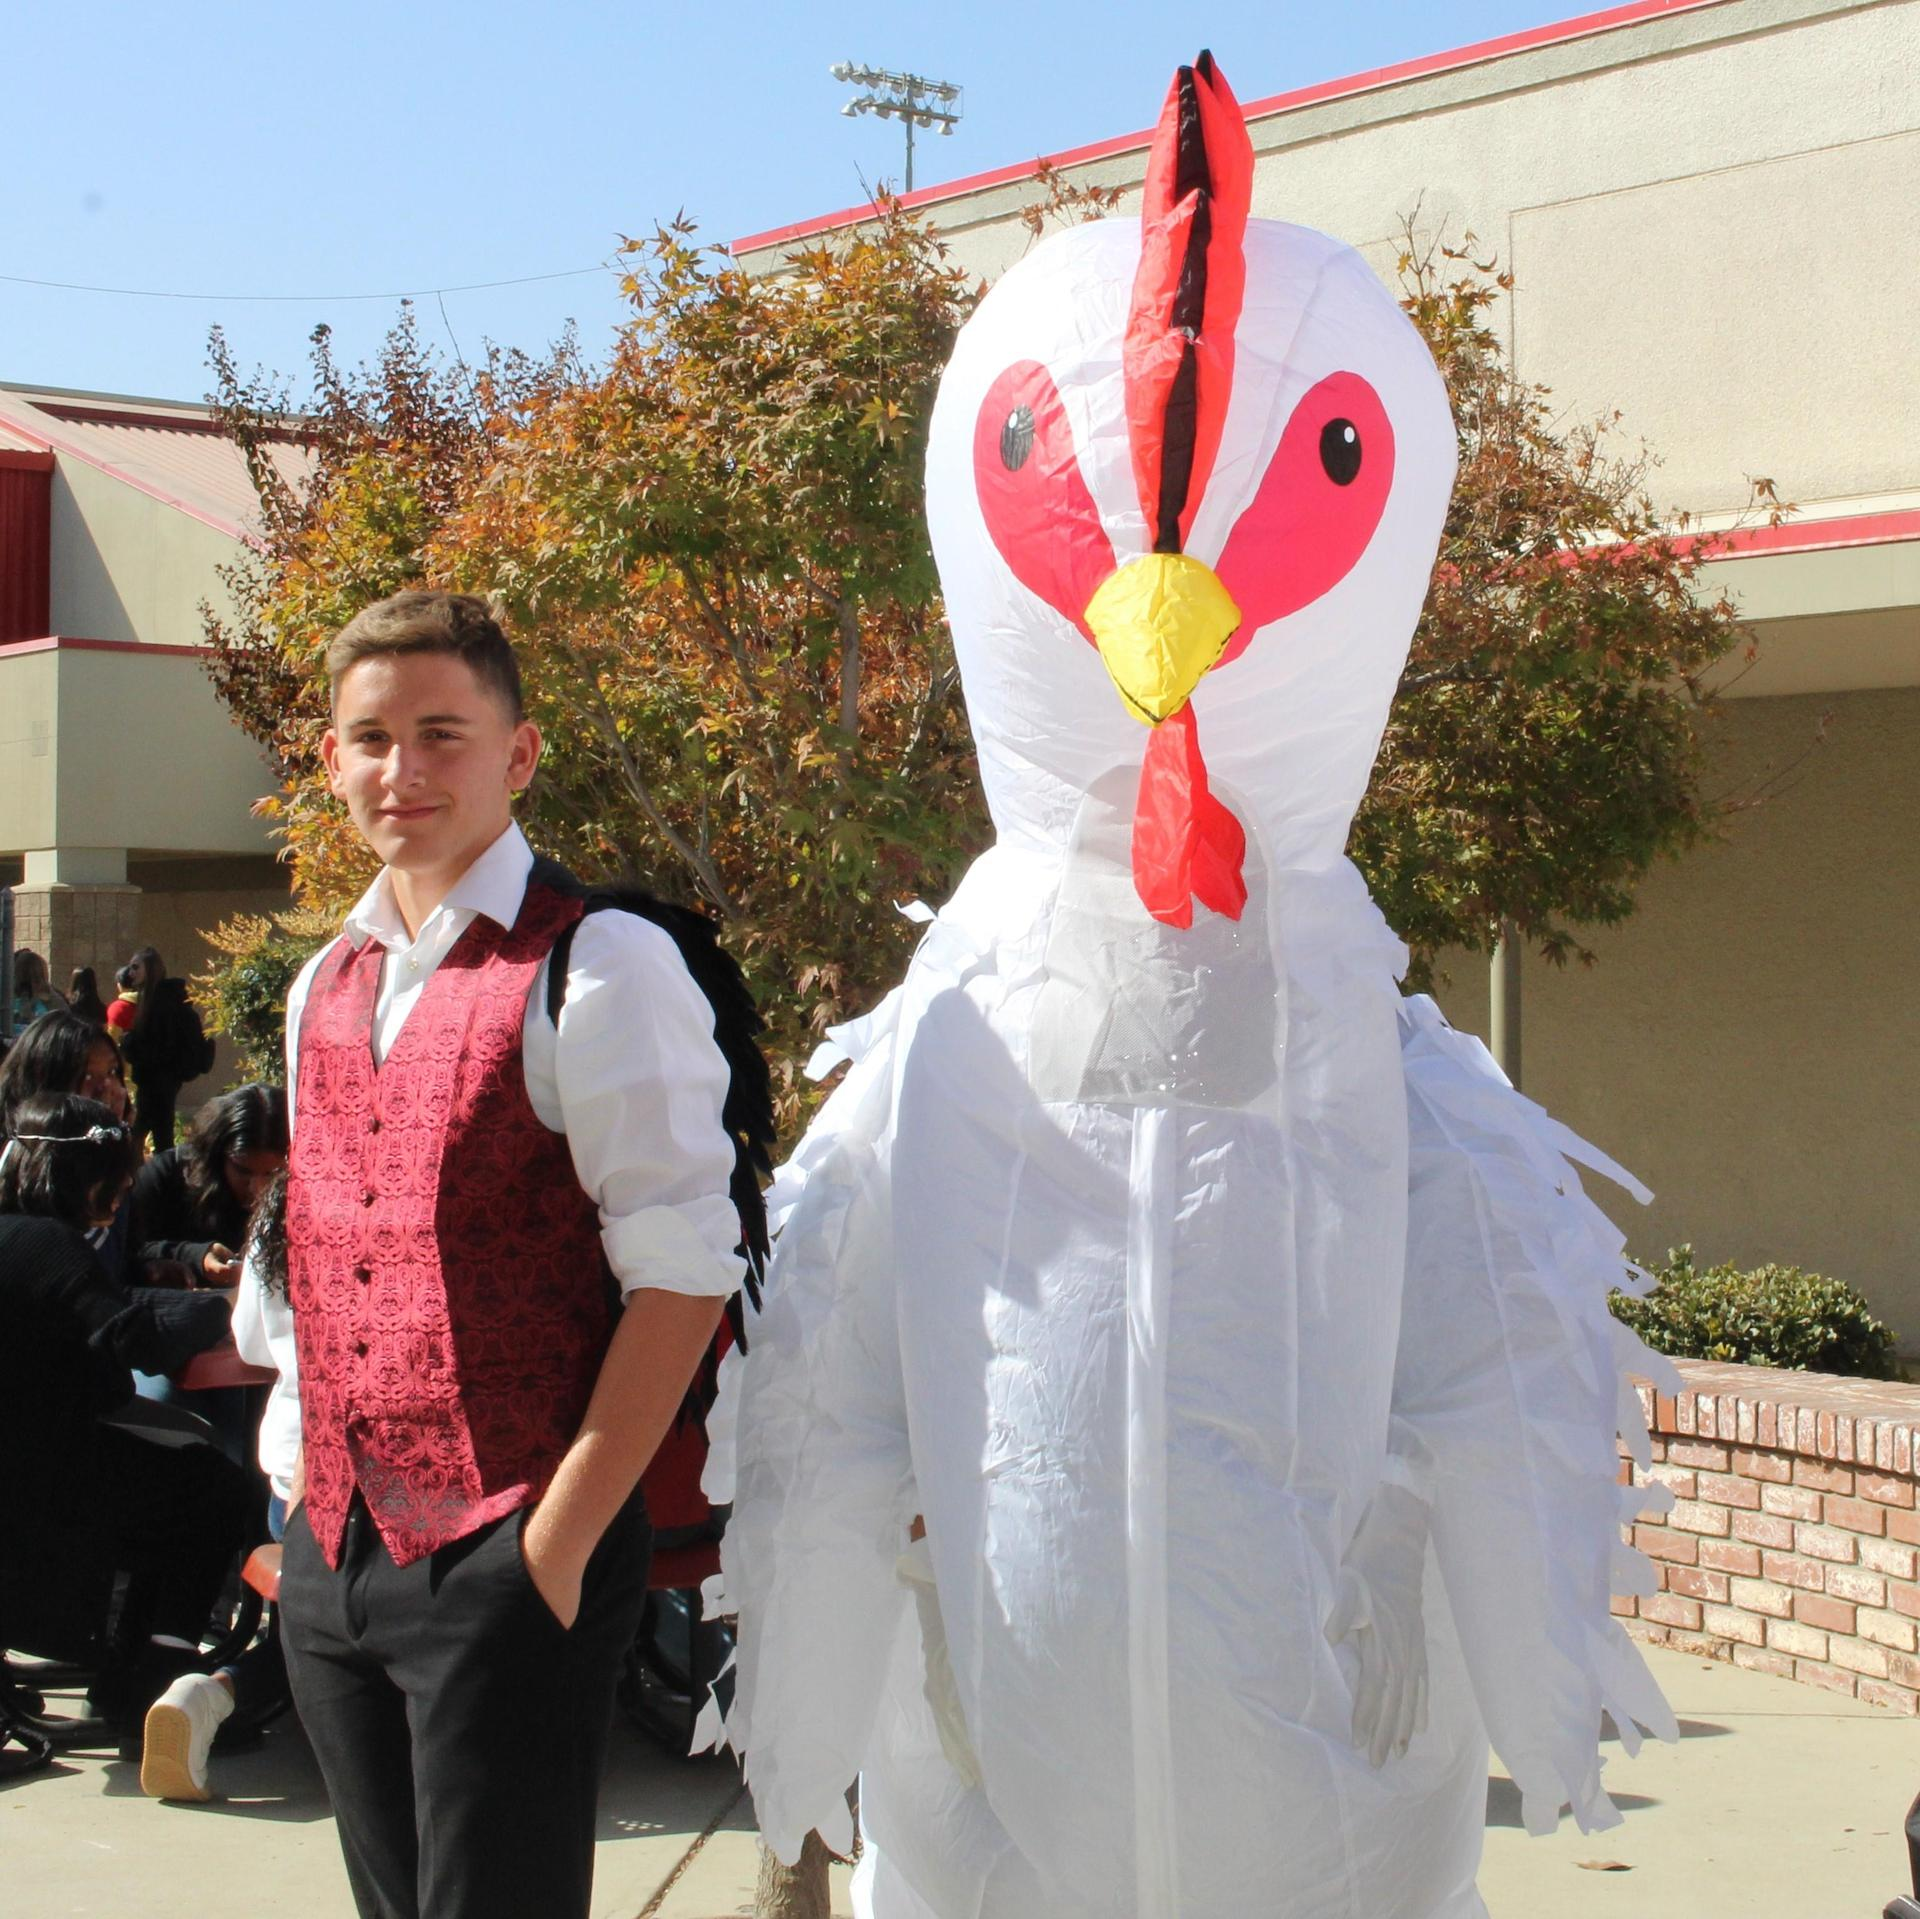 Gavin Celedon as a vampire and Roman Mendez as a chicken